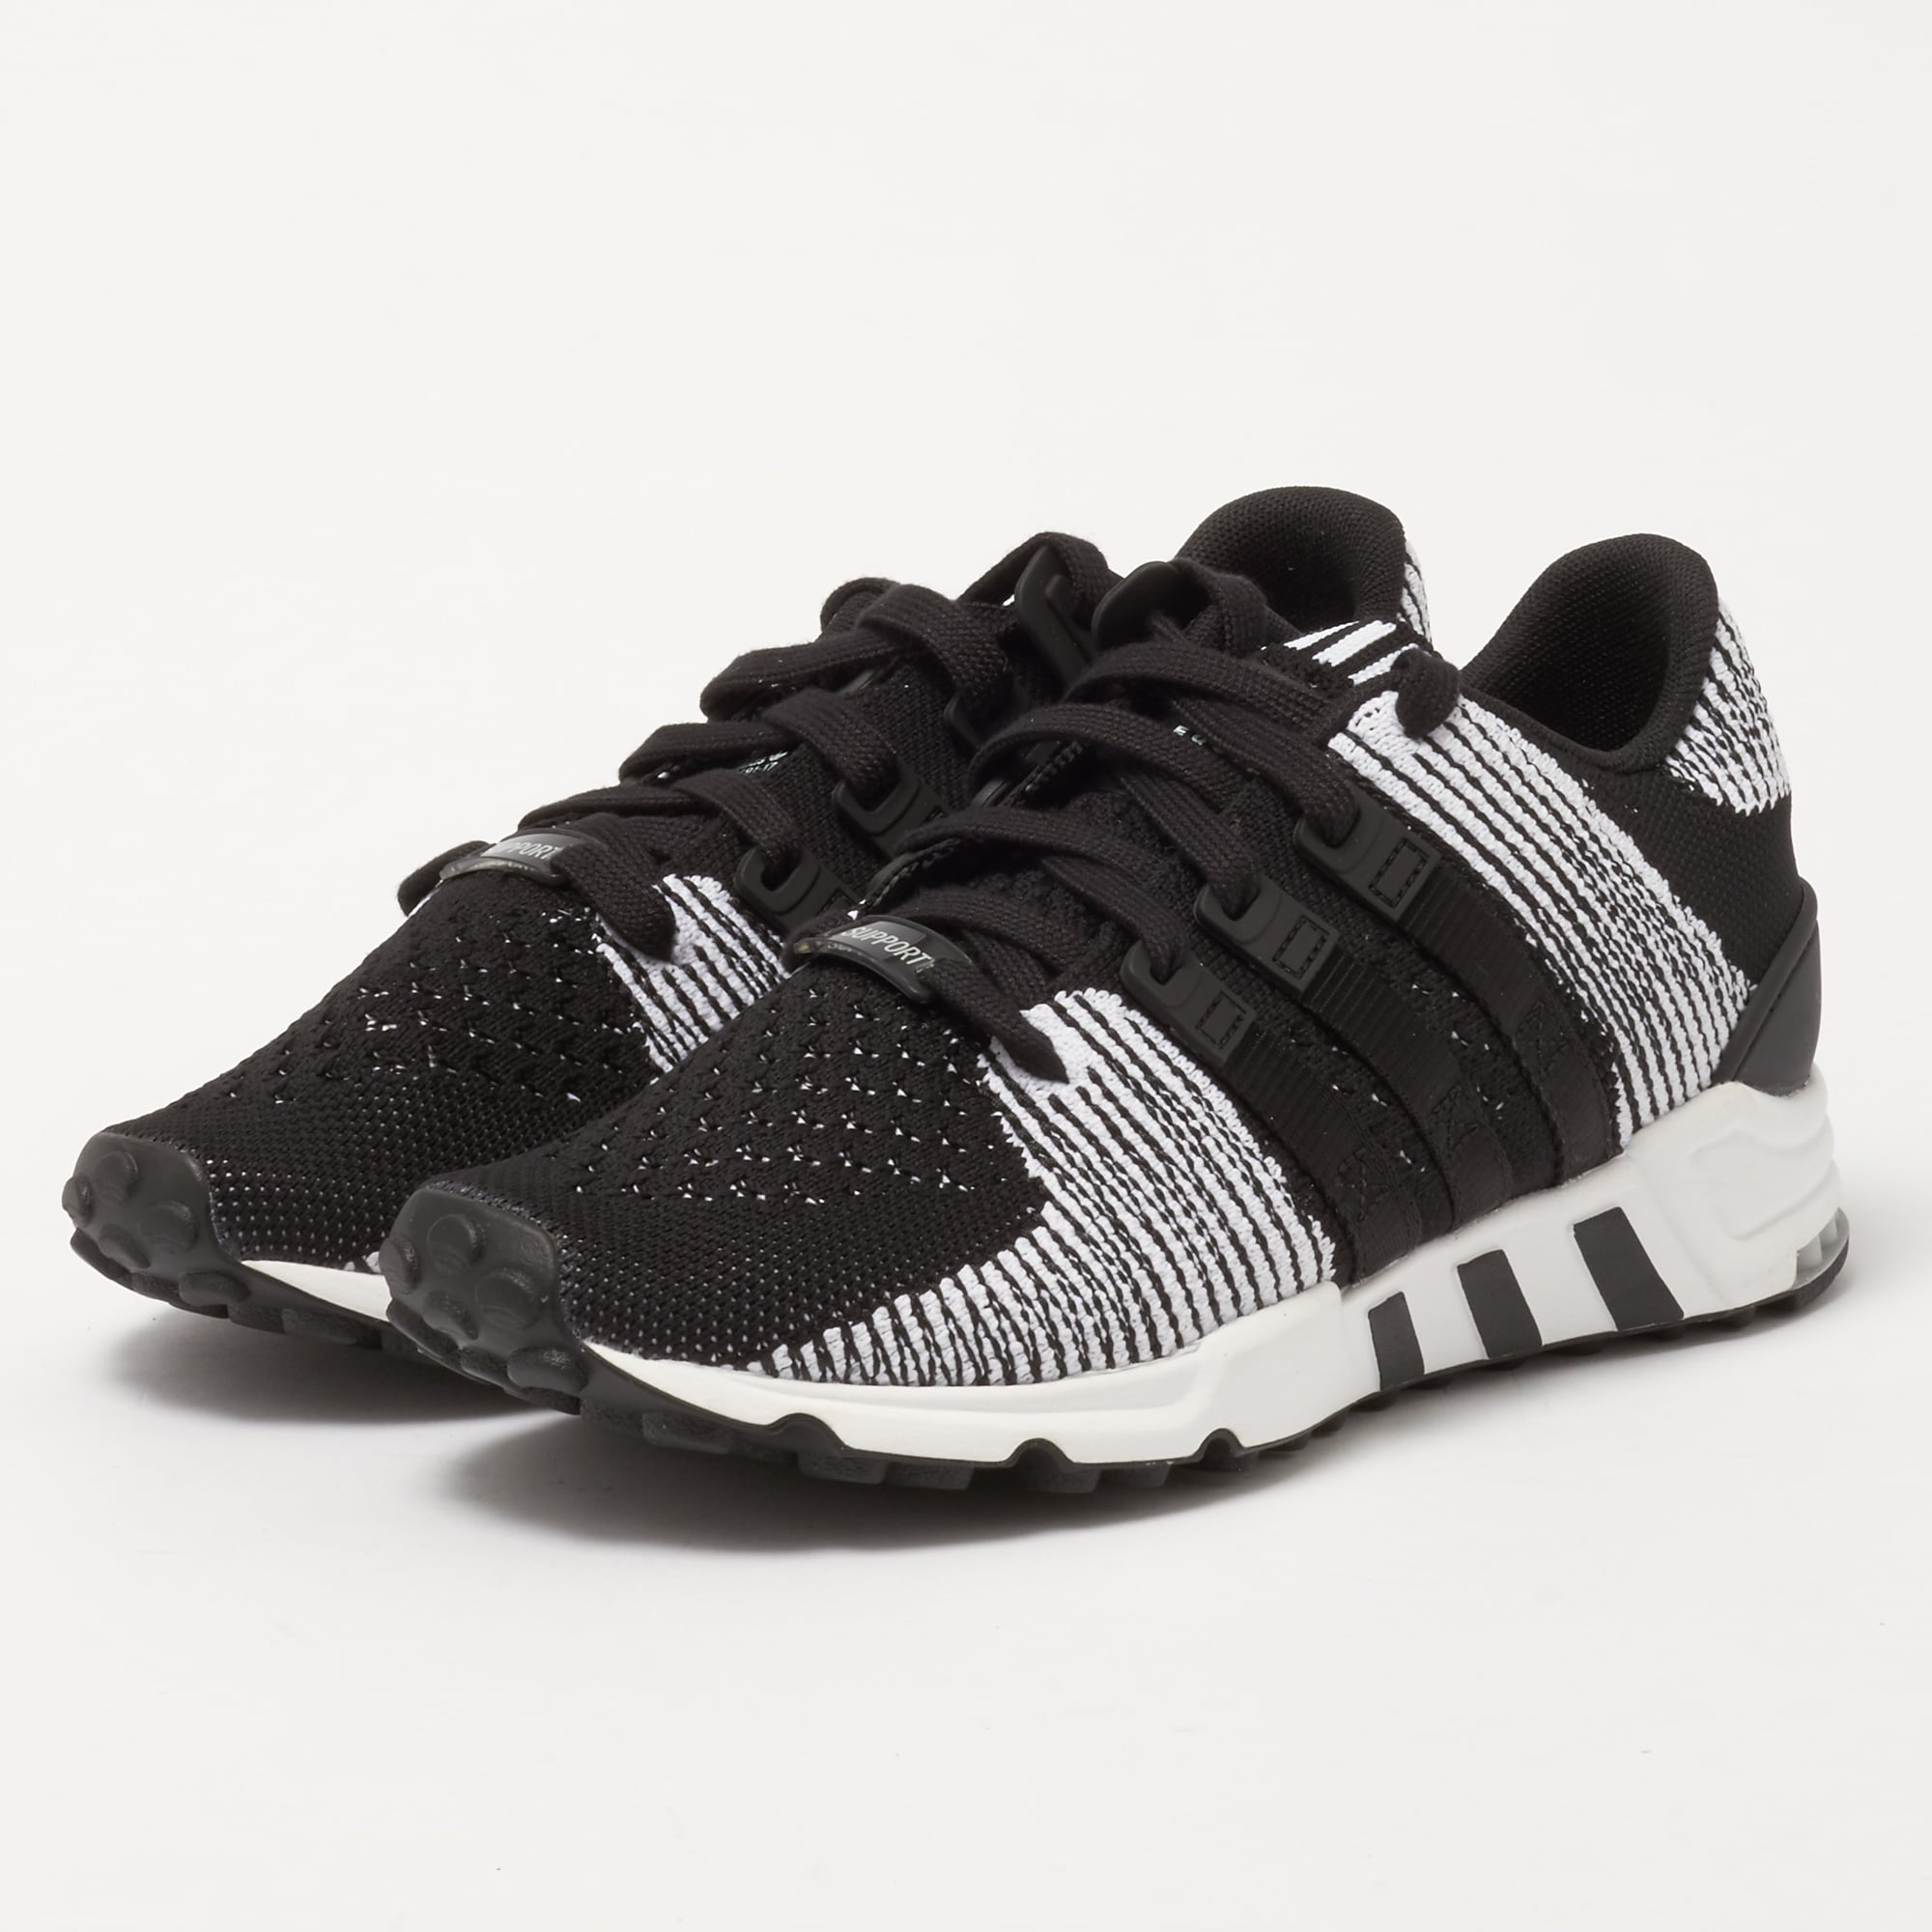 buy popular 22109 1f48f adidas Originals EQT Support RF Primeknit